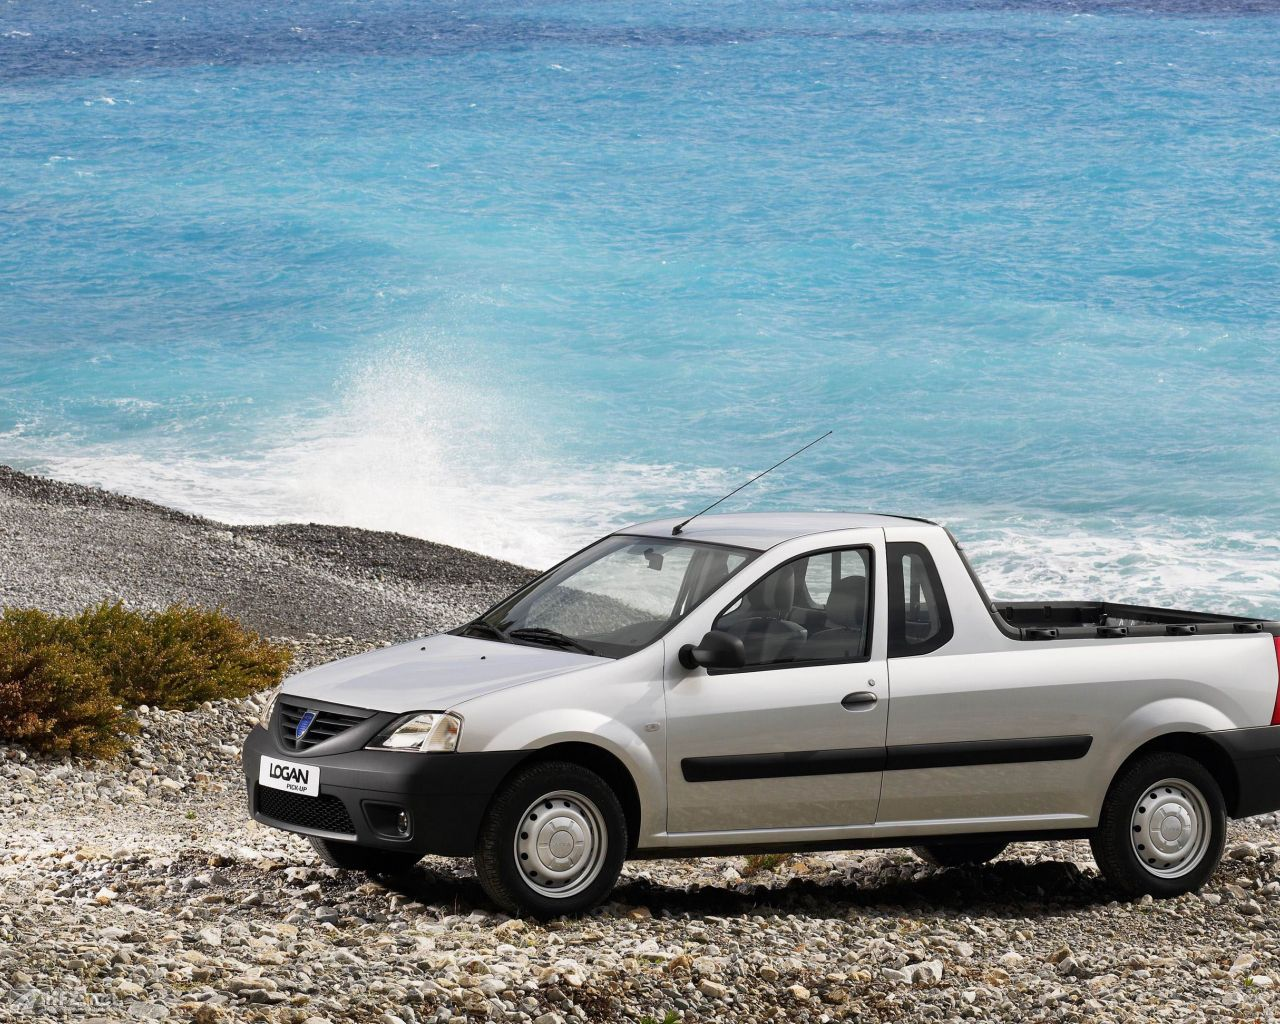 dacia-pick-up-1280x1024-141